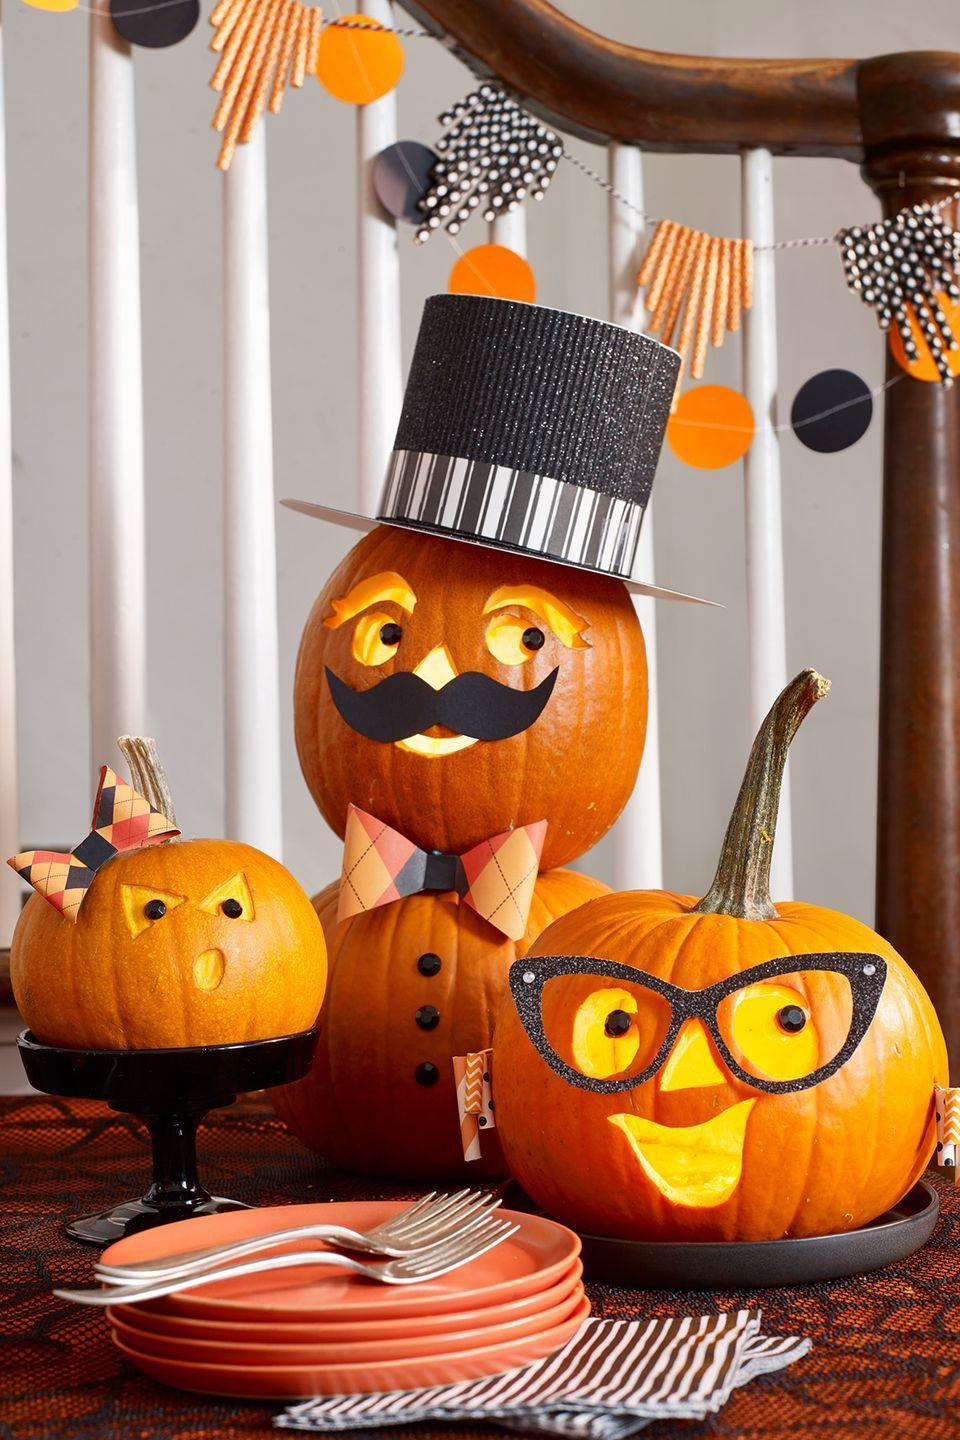 "<p>Statement accessories like cat-eye glasses, a top hat, and earrings give this family of pumpkins some serious style.</p><p><em><strong><a href=""https://www.womansday.com/home/crafts-projects/g22840971/halloween-2018-templates/"" rel=""nofollow noopener"" target=""_blank"" data-ylk=""slk:Get the Family Pumpkins tutorial."" class=""link rapid-noclick-resp"">Get the Family Pumpkins tutorial.</a></strong></em></p>"